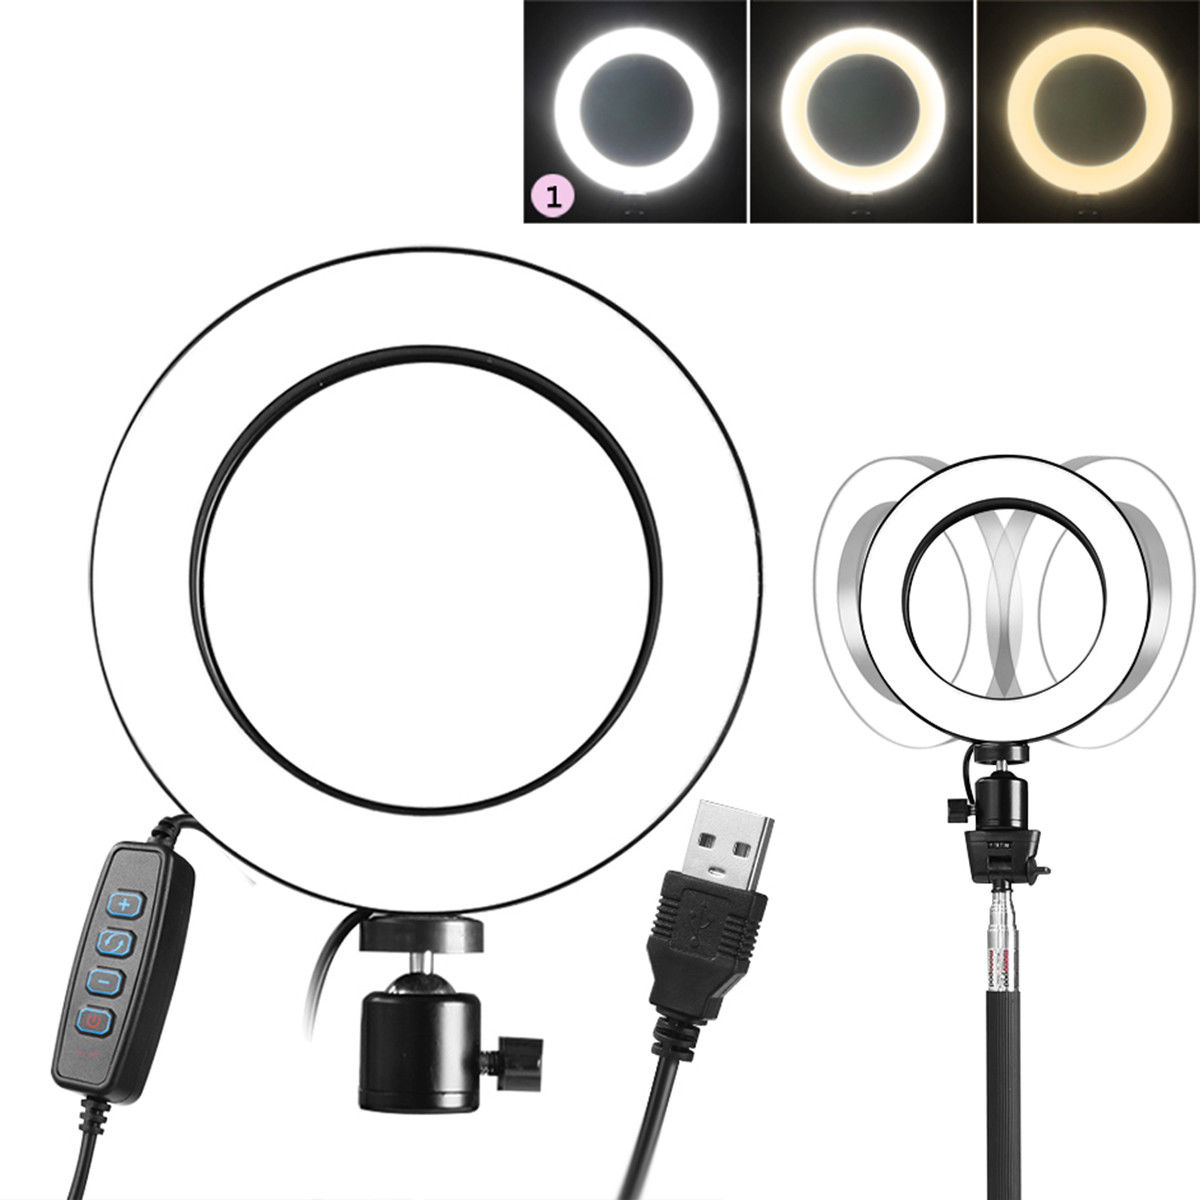 LED 3 Modes 40W 5500K Dimmable Studio Camera Ring Light Photo Phone Video Black 14.5CM